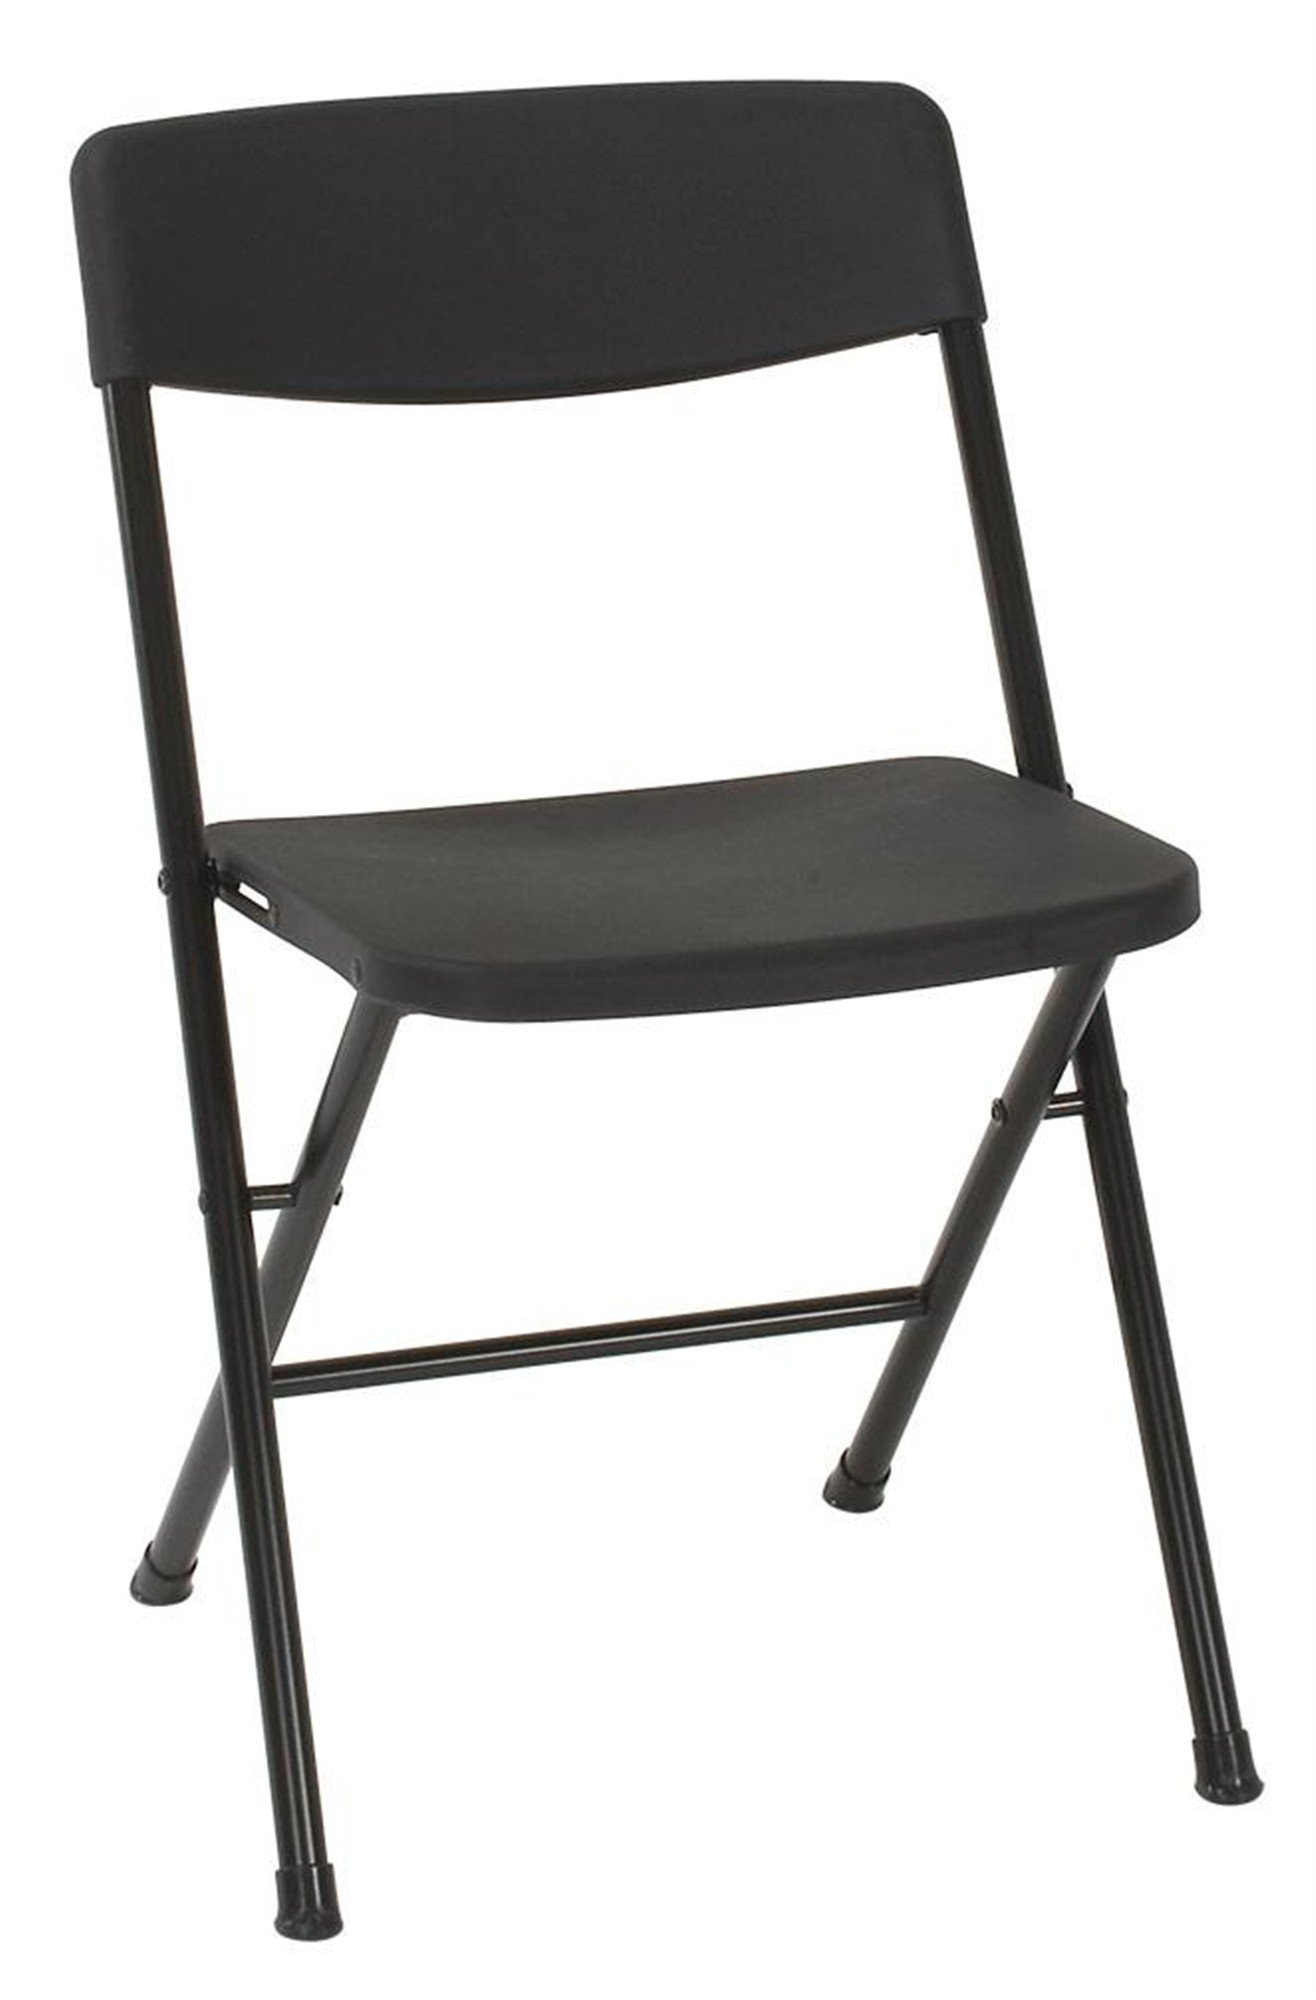 Cosco Resin Folding Chair with Molded Seat and Back, 4 Pack, Black by Cosco